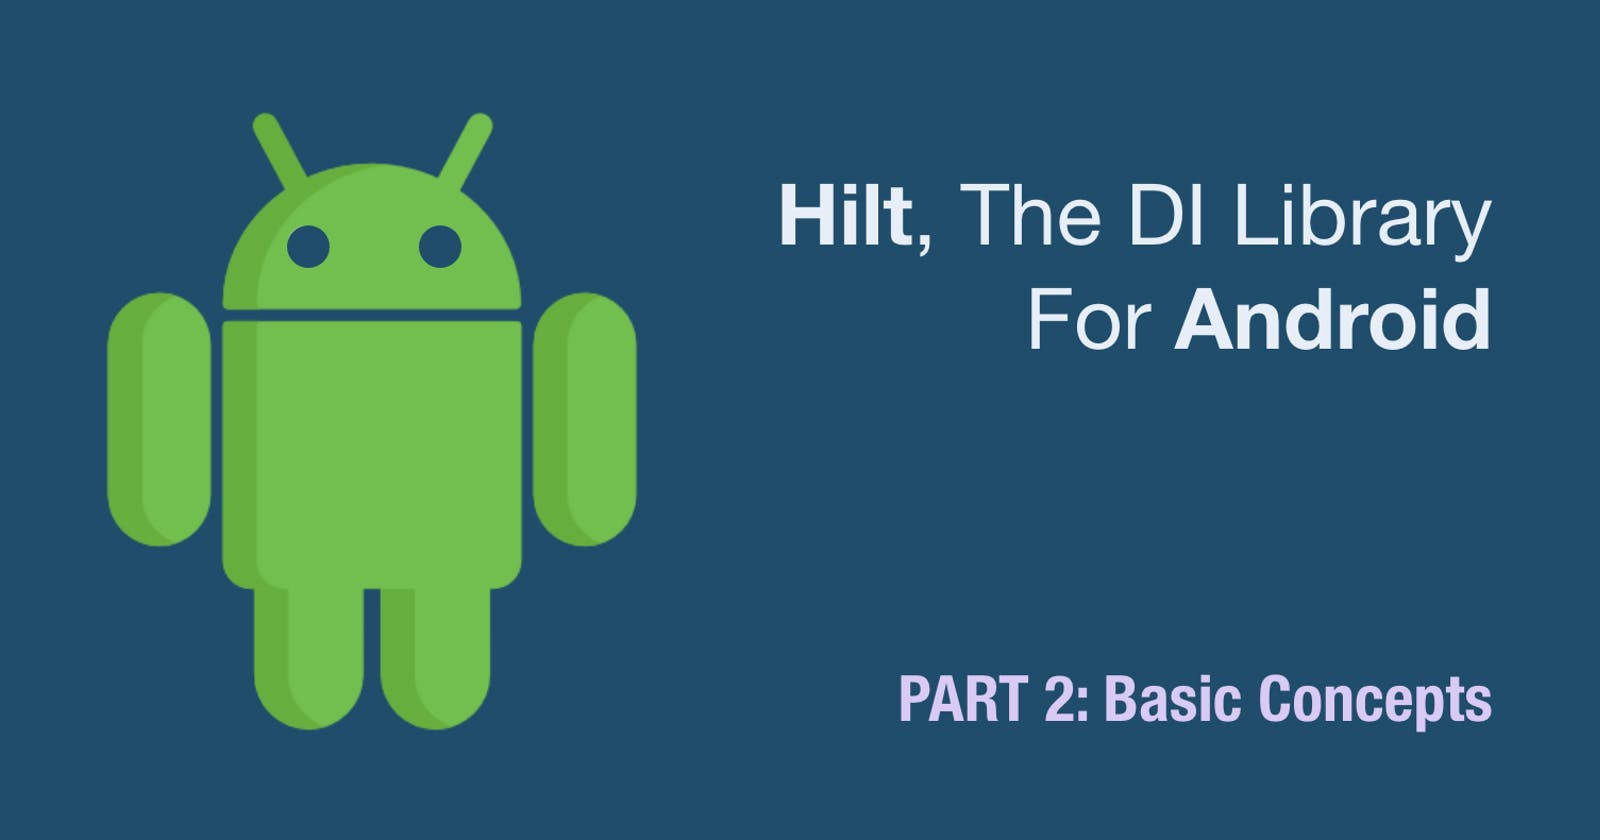 Hilt, The DI Library For Android – PART 2: Basic Concepts